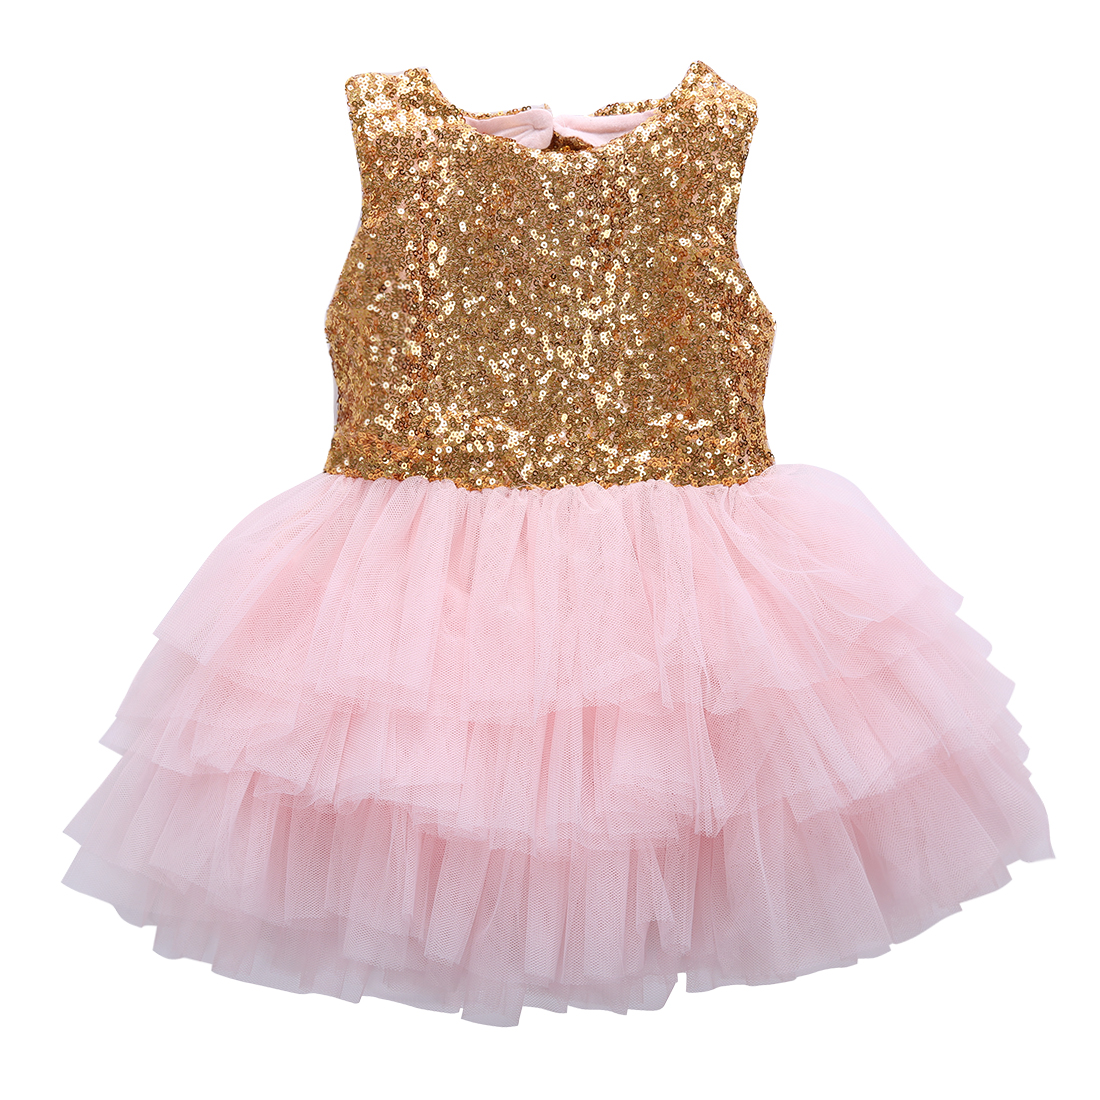 fcbfcc28dfedc Baby Girl Party Dresses Uk | Saddha